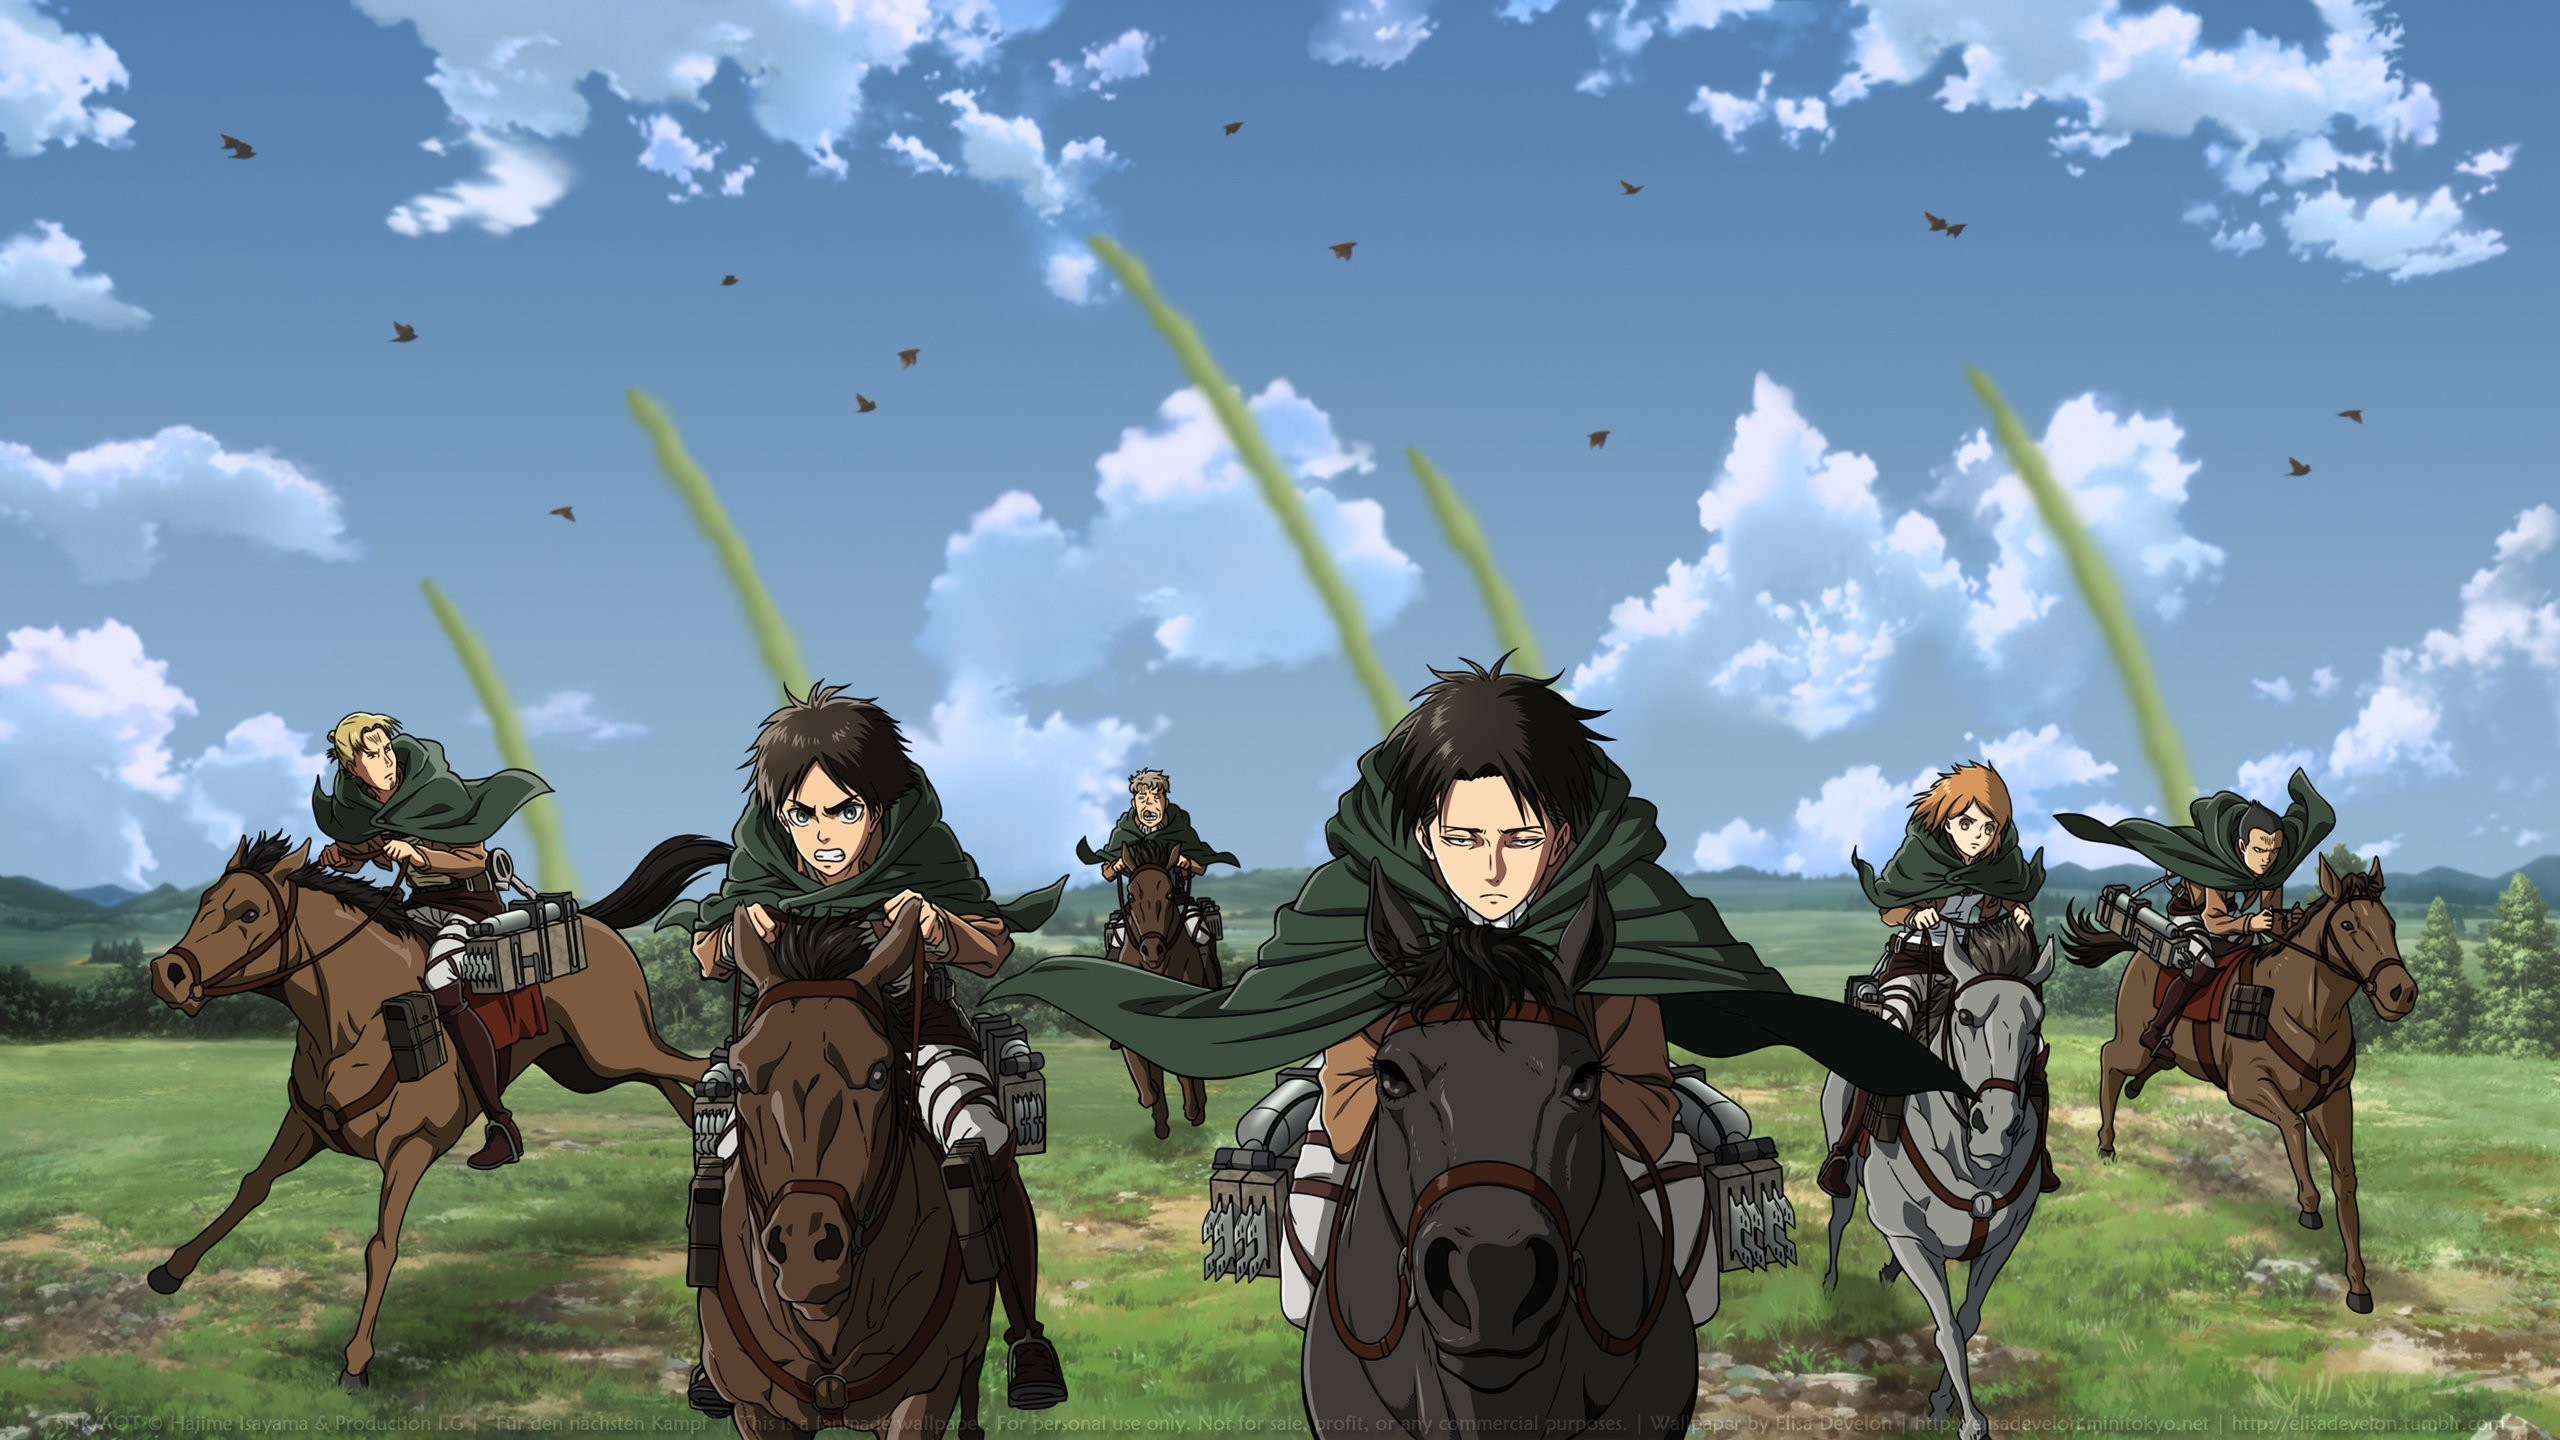 Download Wallpaper From Anime Attack On Titan With Tags Eren Yeager Lock Screen Levi Ackerman Petra Ral Gunther Schultz Oluo Bozado Mike Zacharius